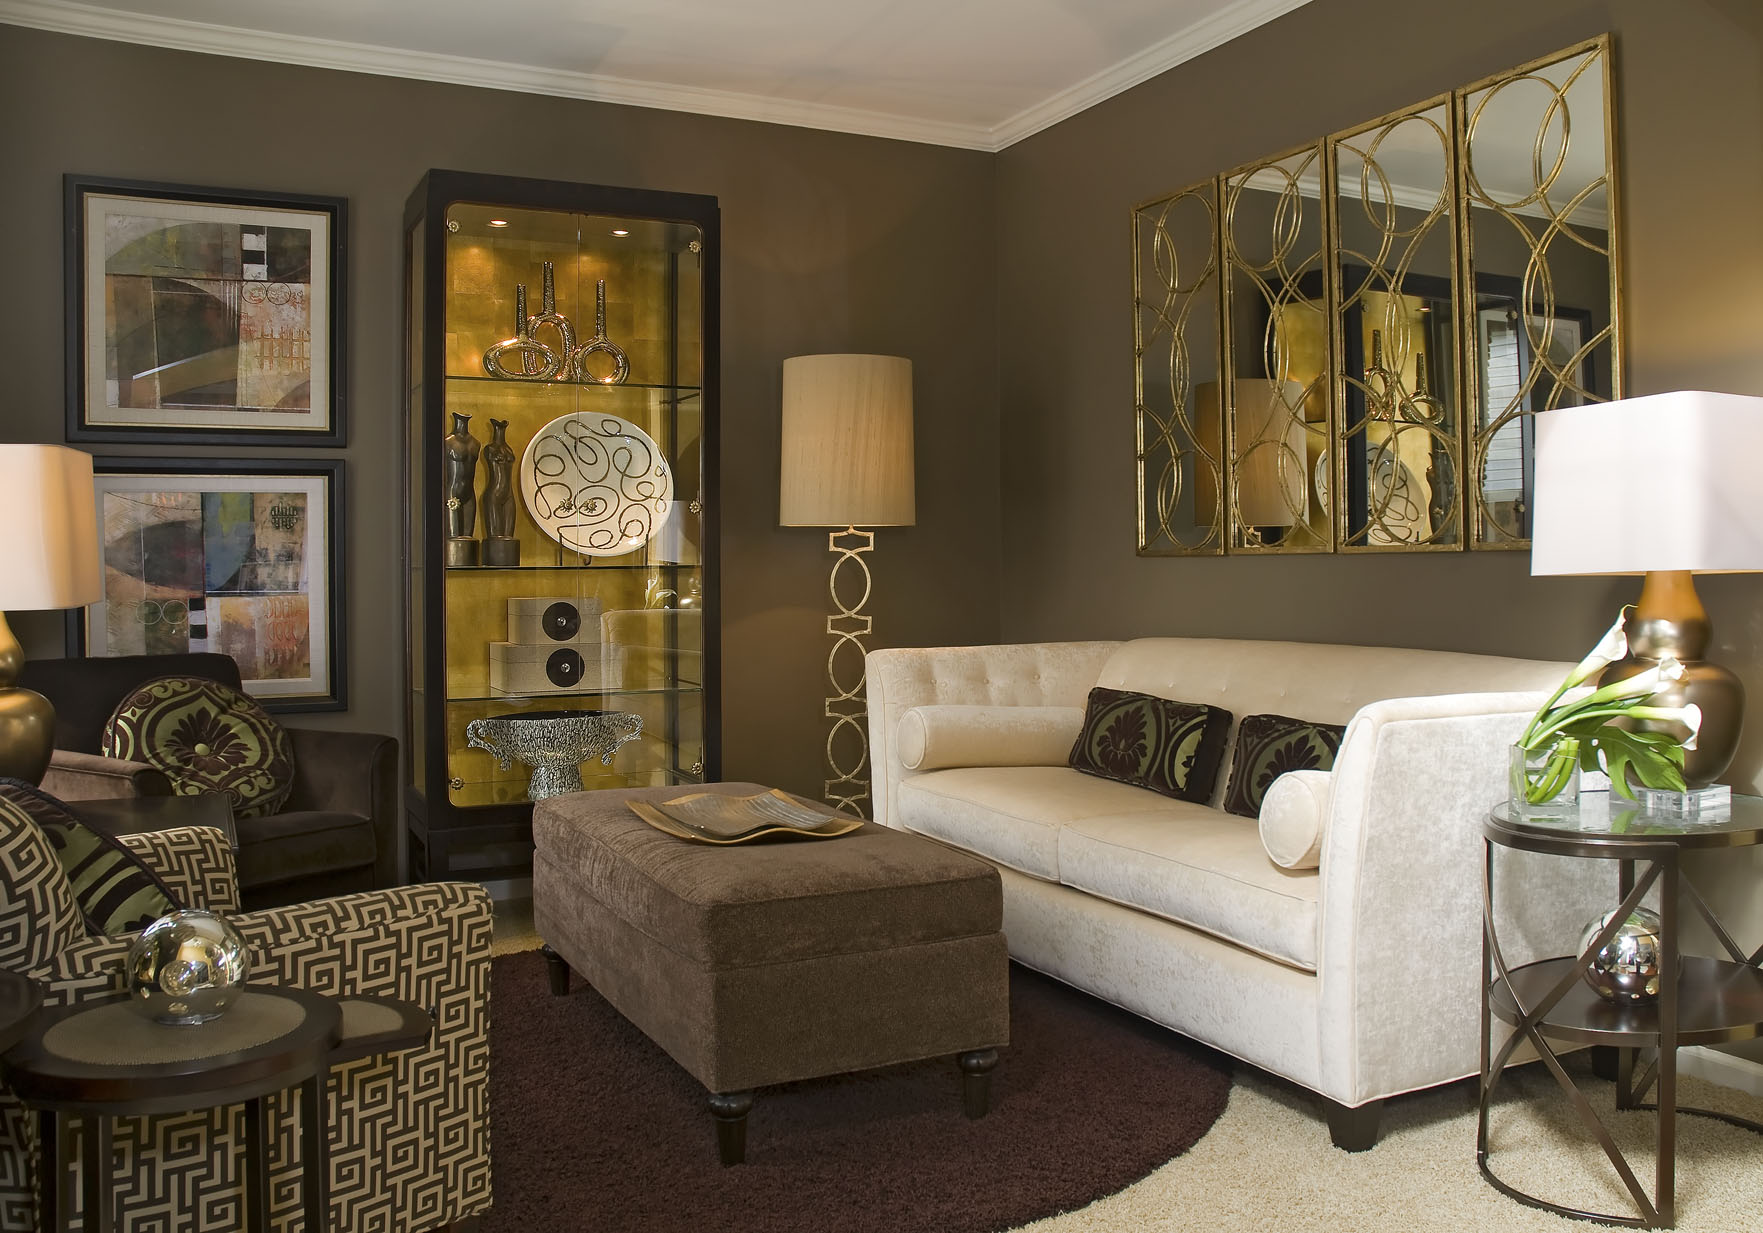 Clean Lines U2013 Class And Sophistication Abound In This Tastefully Designed Transitional  Living Room. Notice The Wonderful Mixtures Of Comfort, Sparkle, Line, ... Part 63